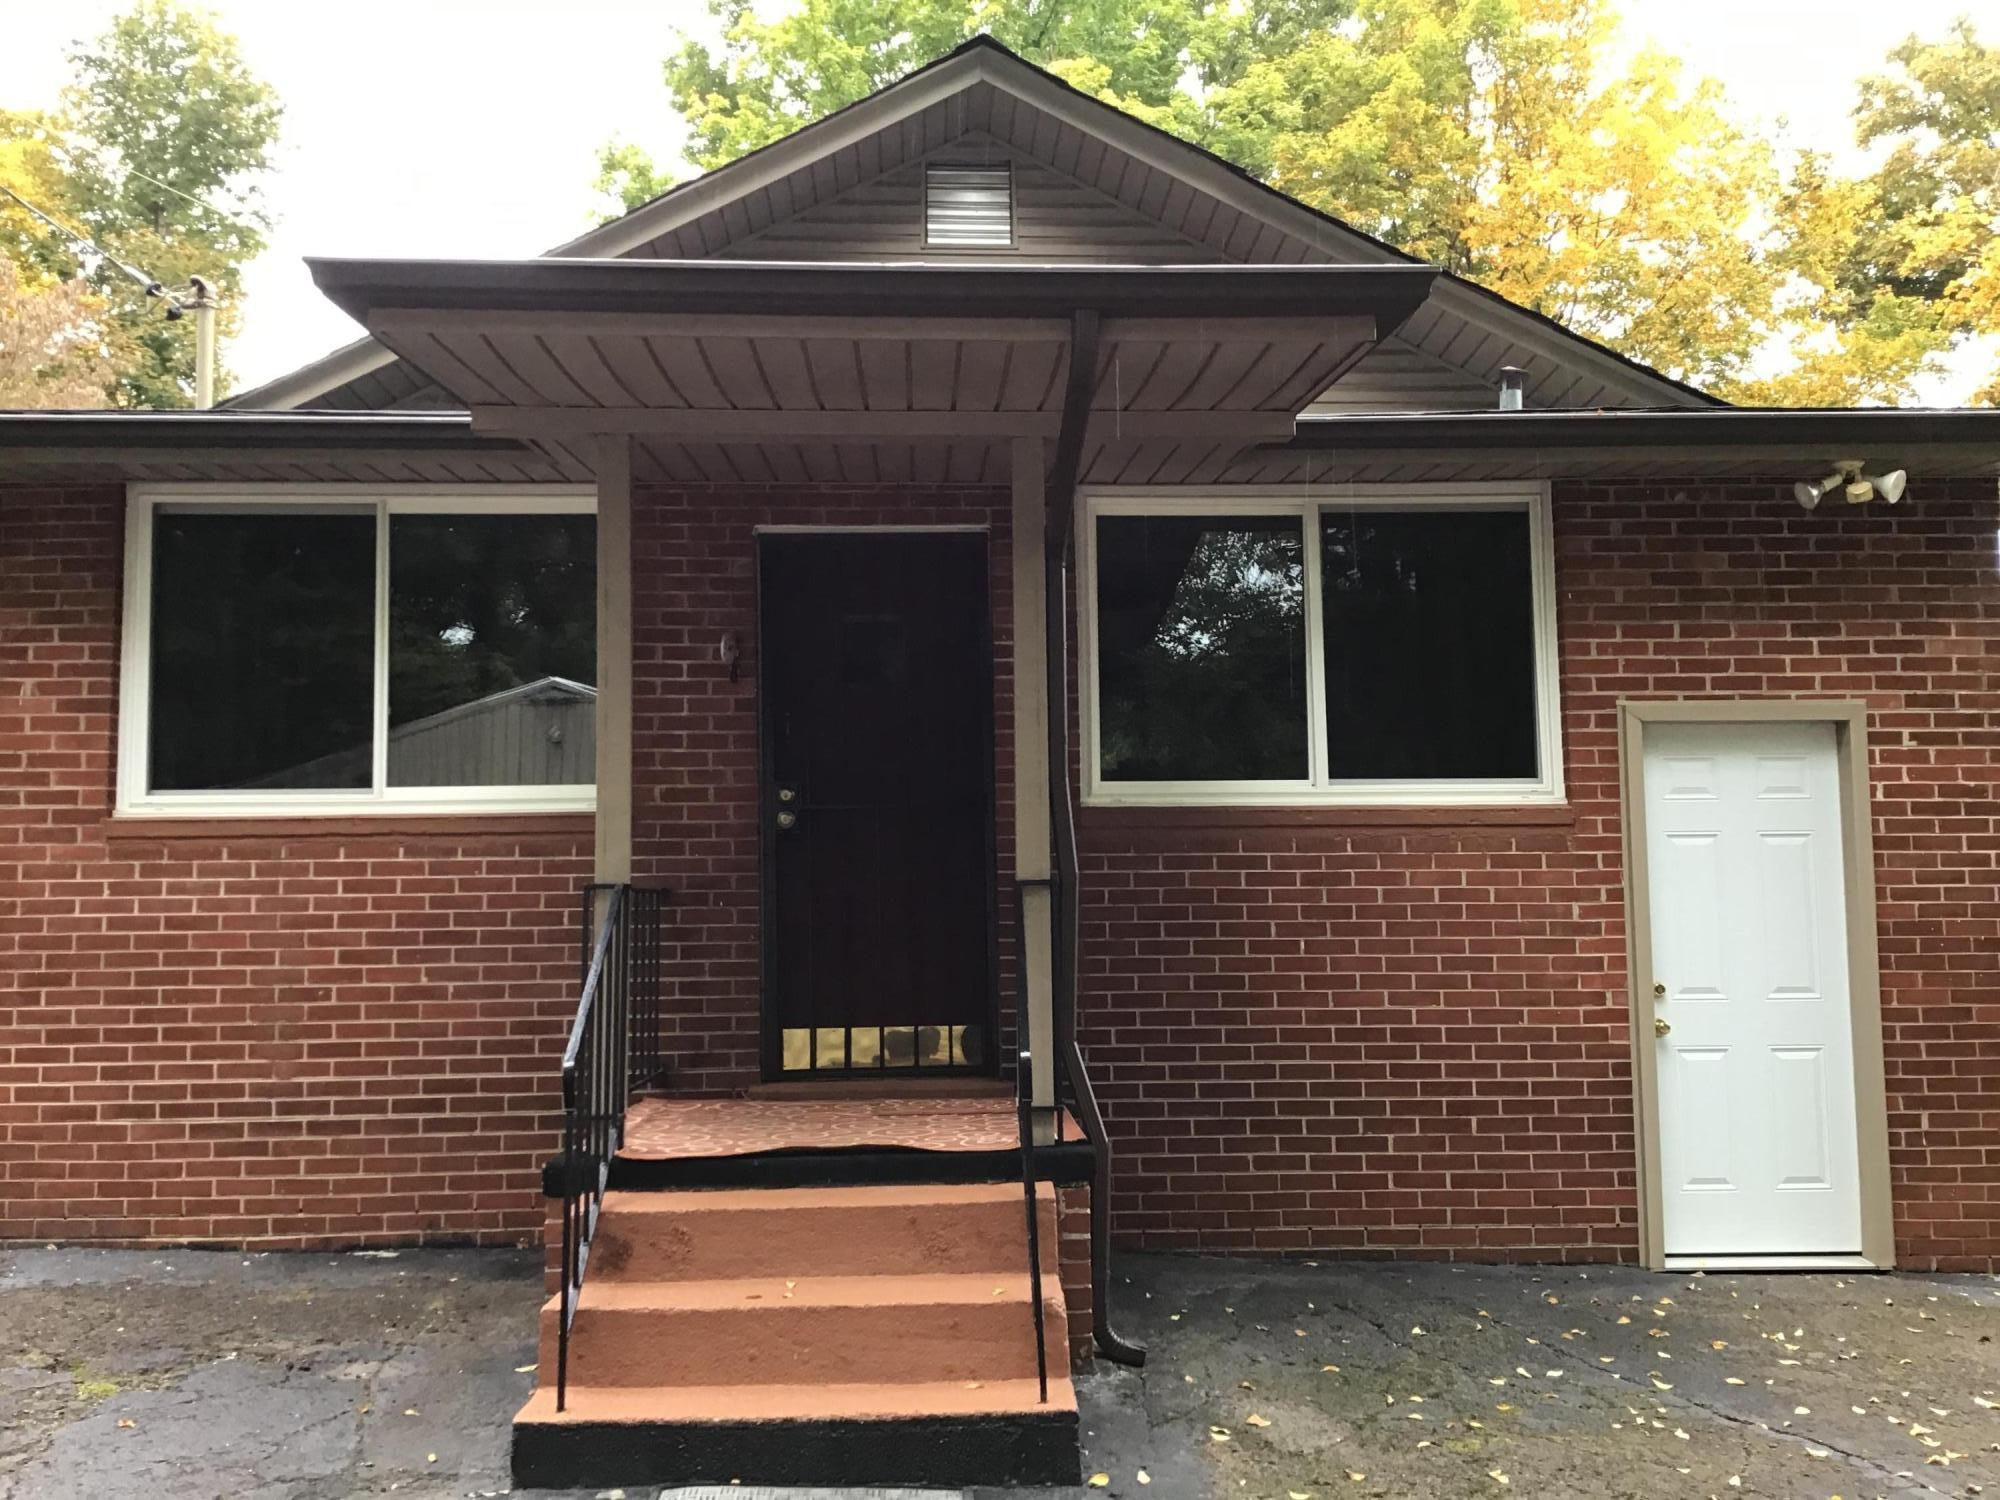 4402 Woodlawn Pike, Knoxville, Tennessee 37920, 3 Bedrooms Bedrooms, ,1 BathroomBathrooms,Single Family,For Sale,Woodlawn,1132600